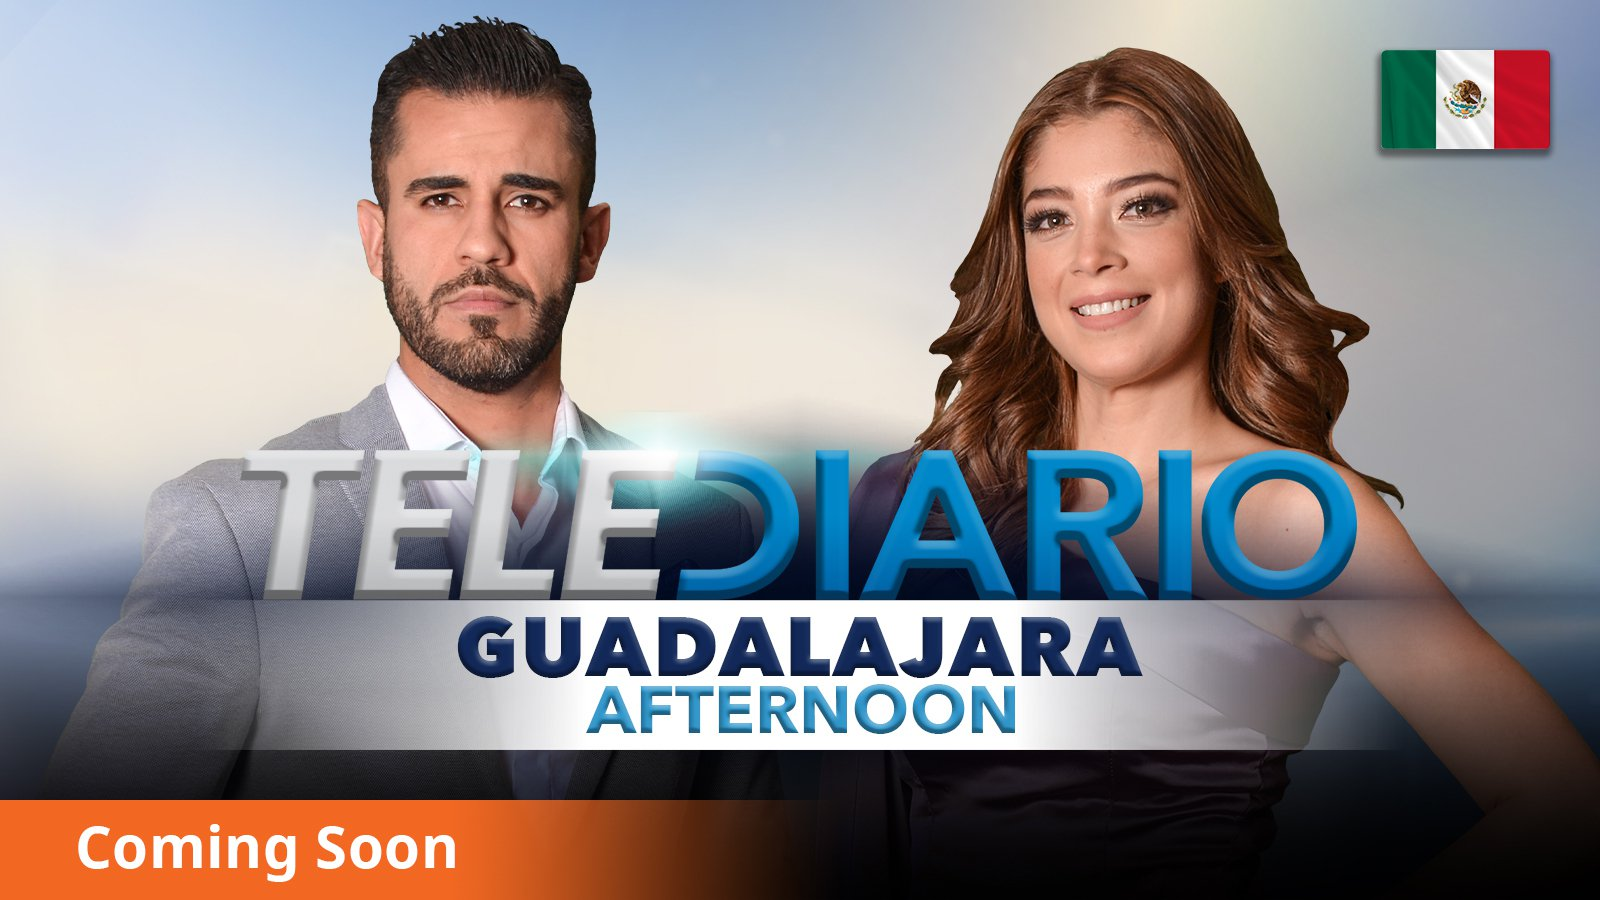 Afternoon GDL Telediario poster